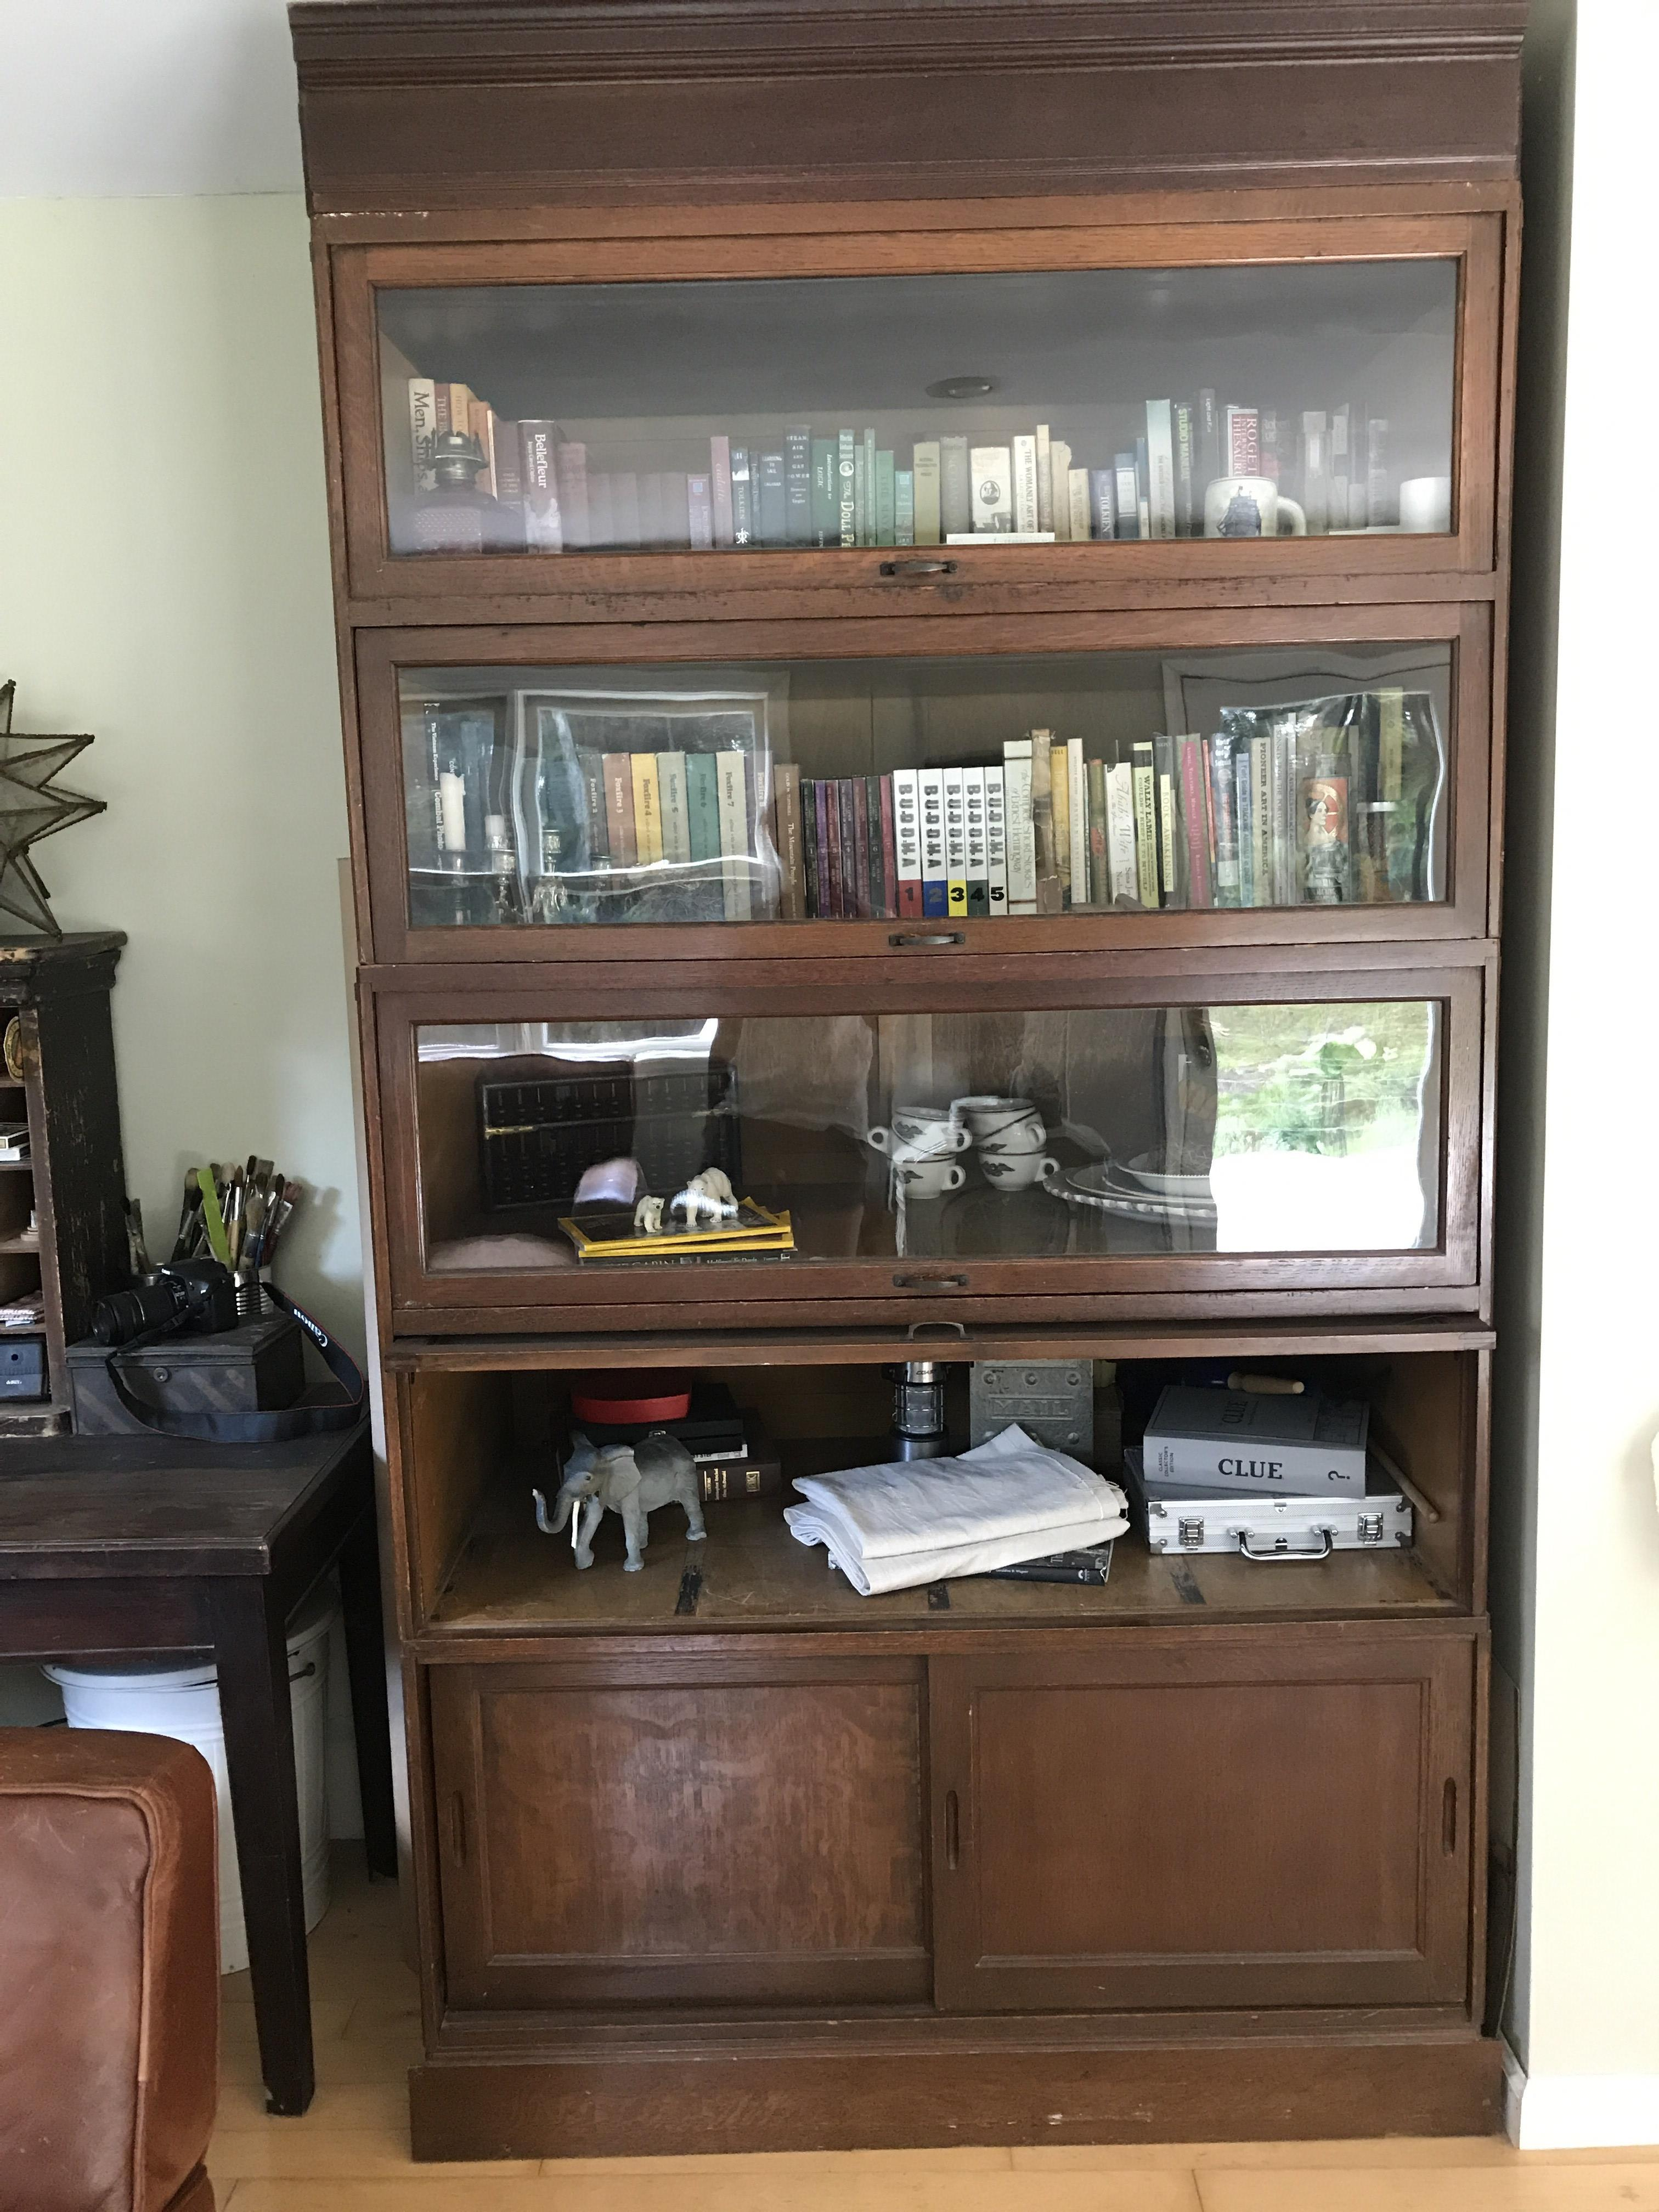 Barrister Bookcase from England